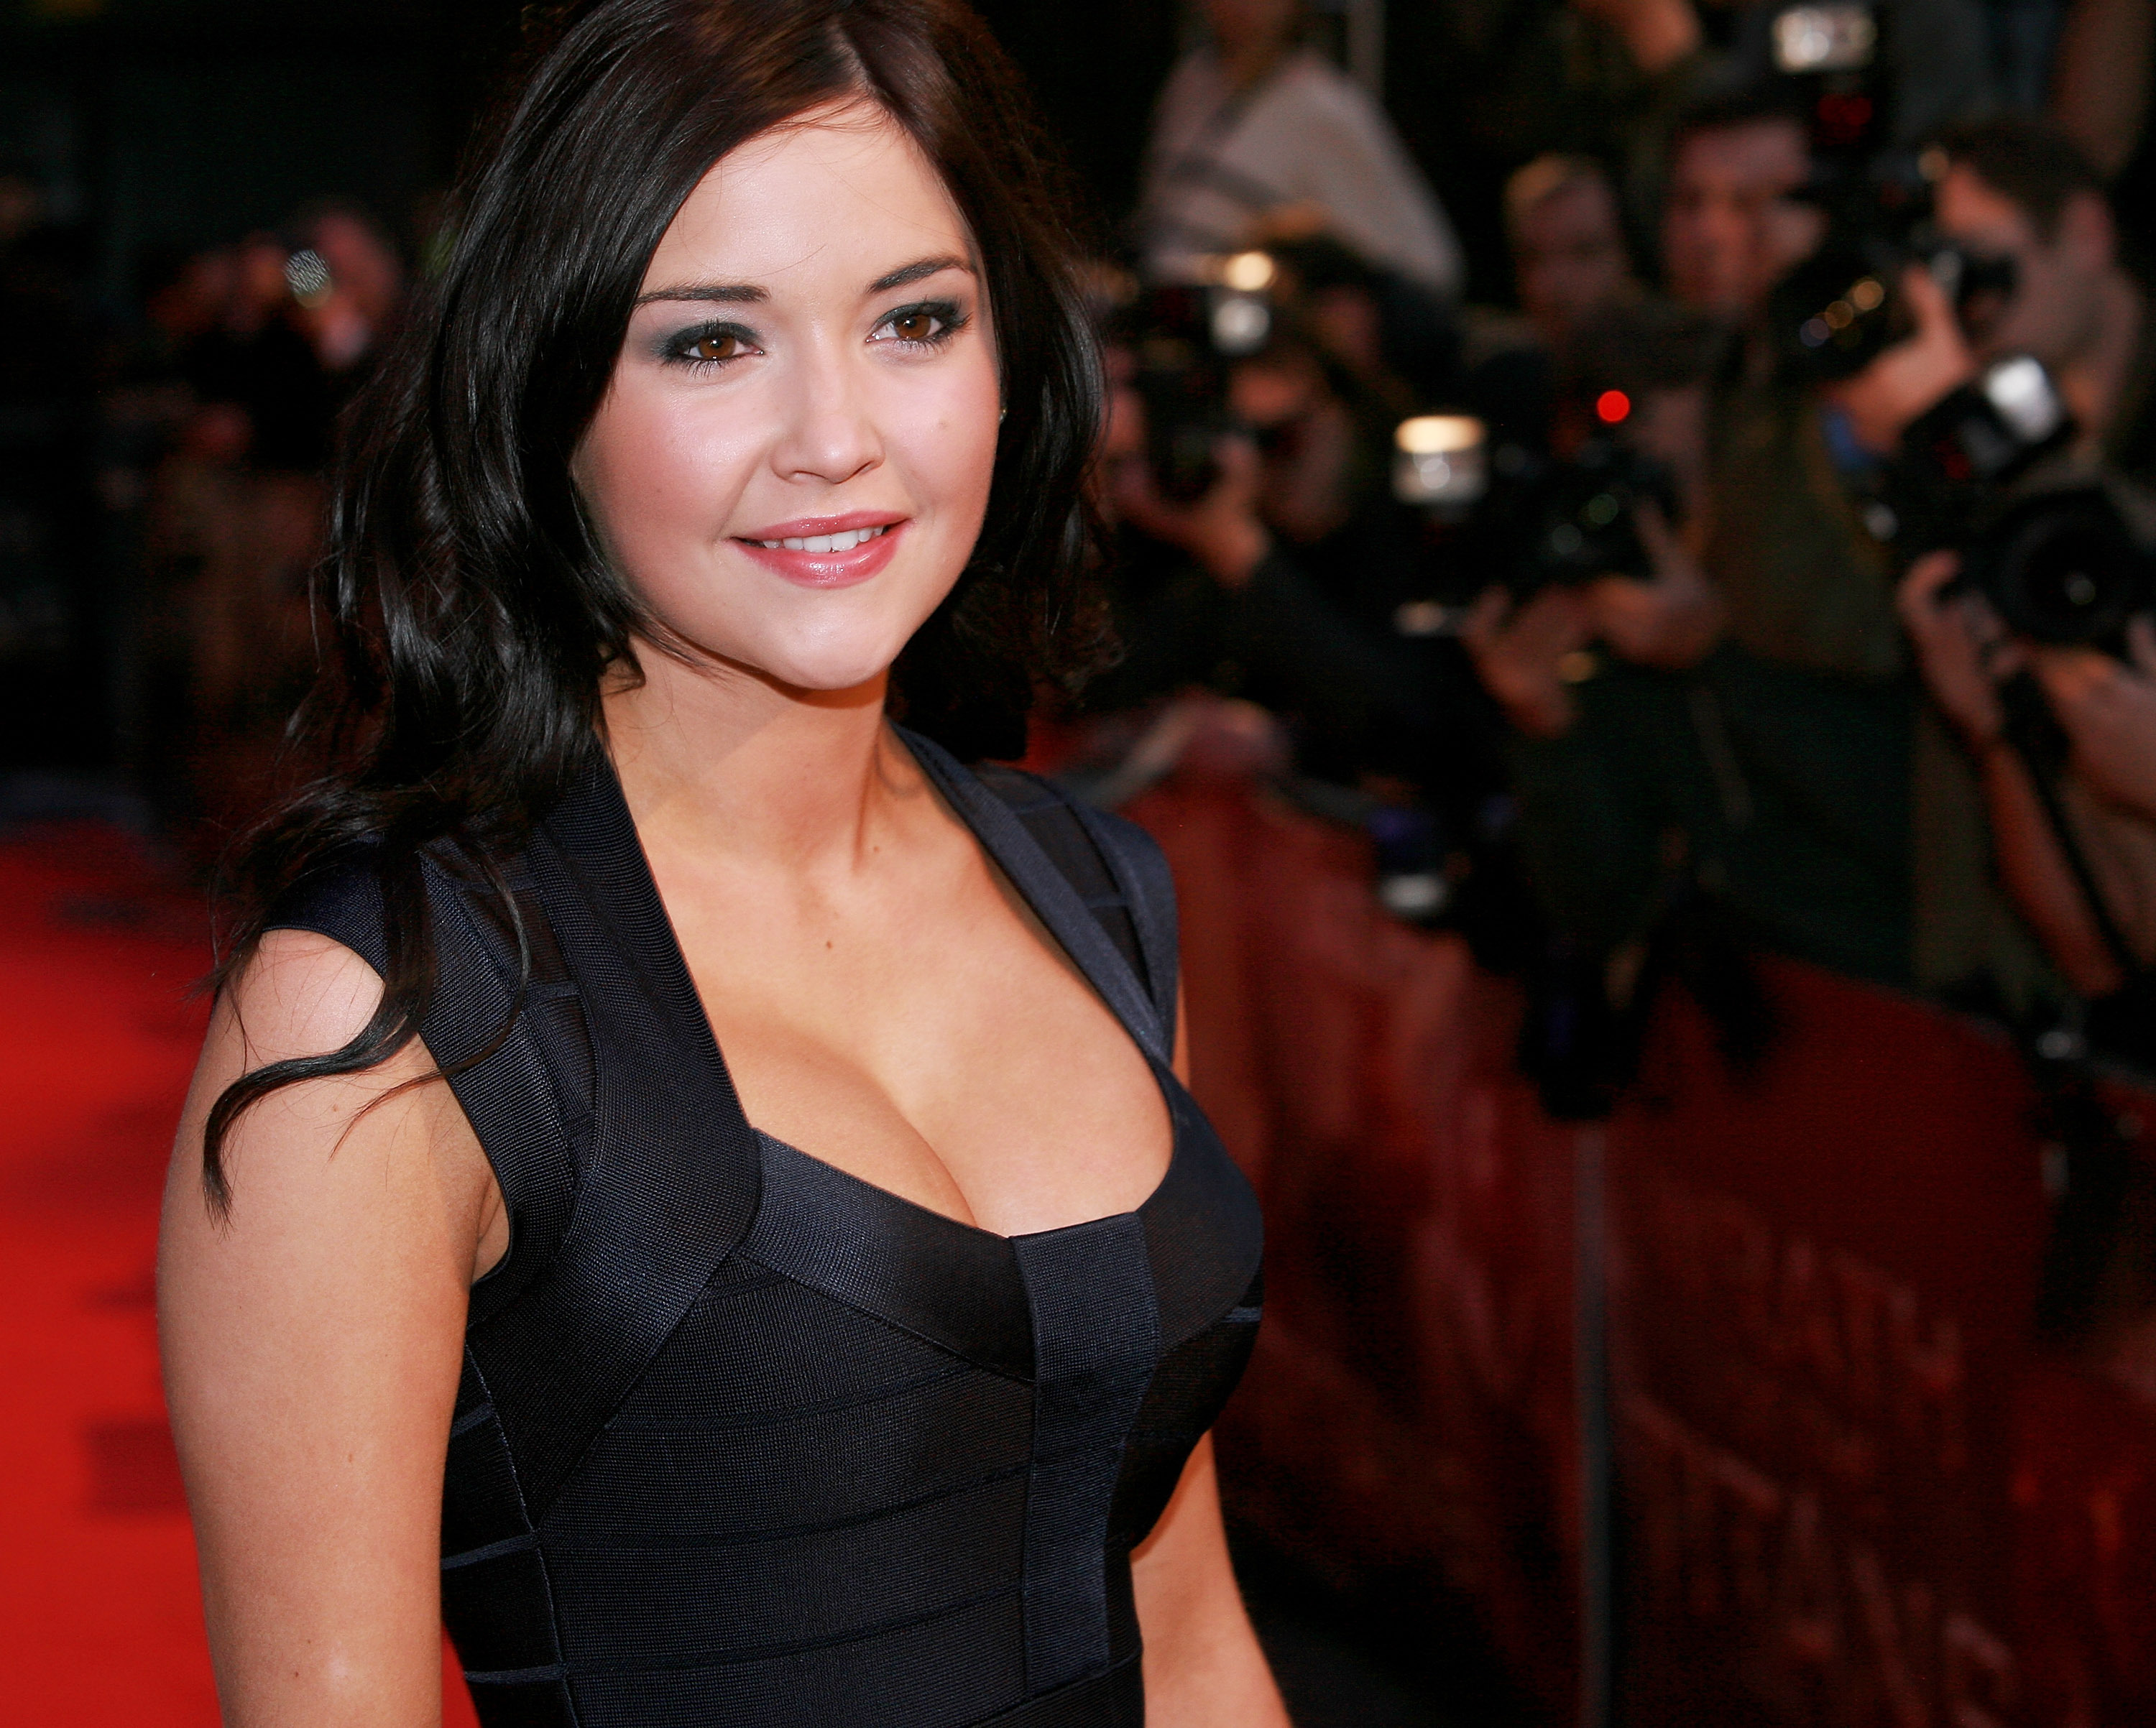 Jacqueline Jossa High Quality Wallpapers